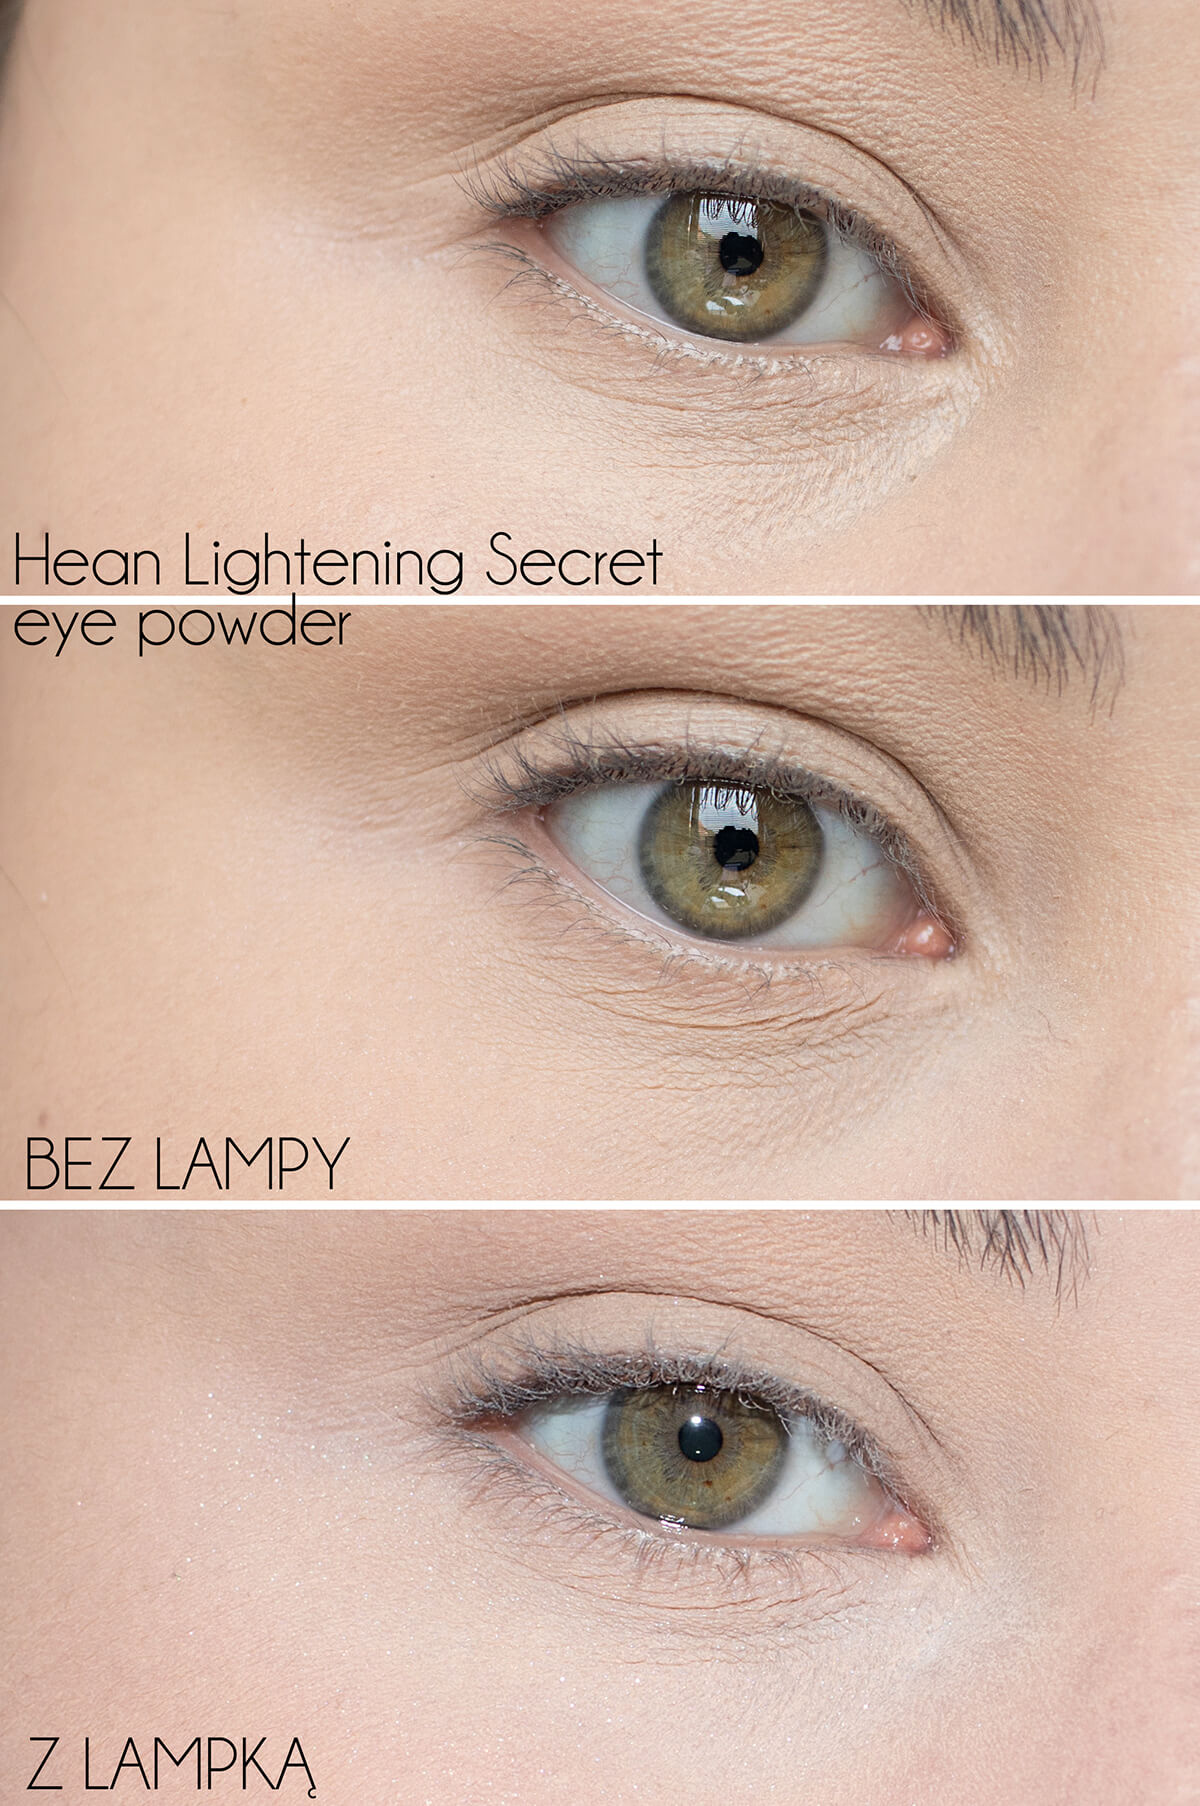 hean lightening secret